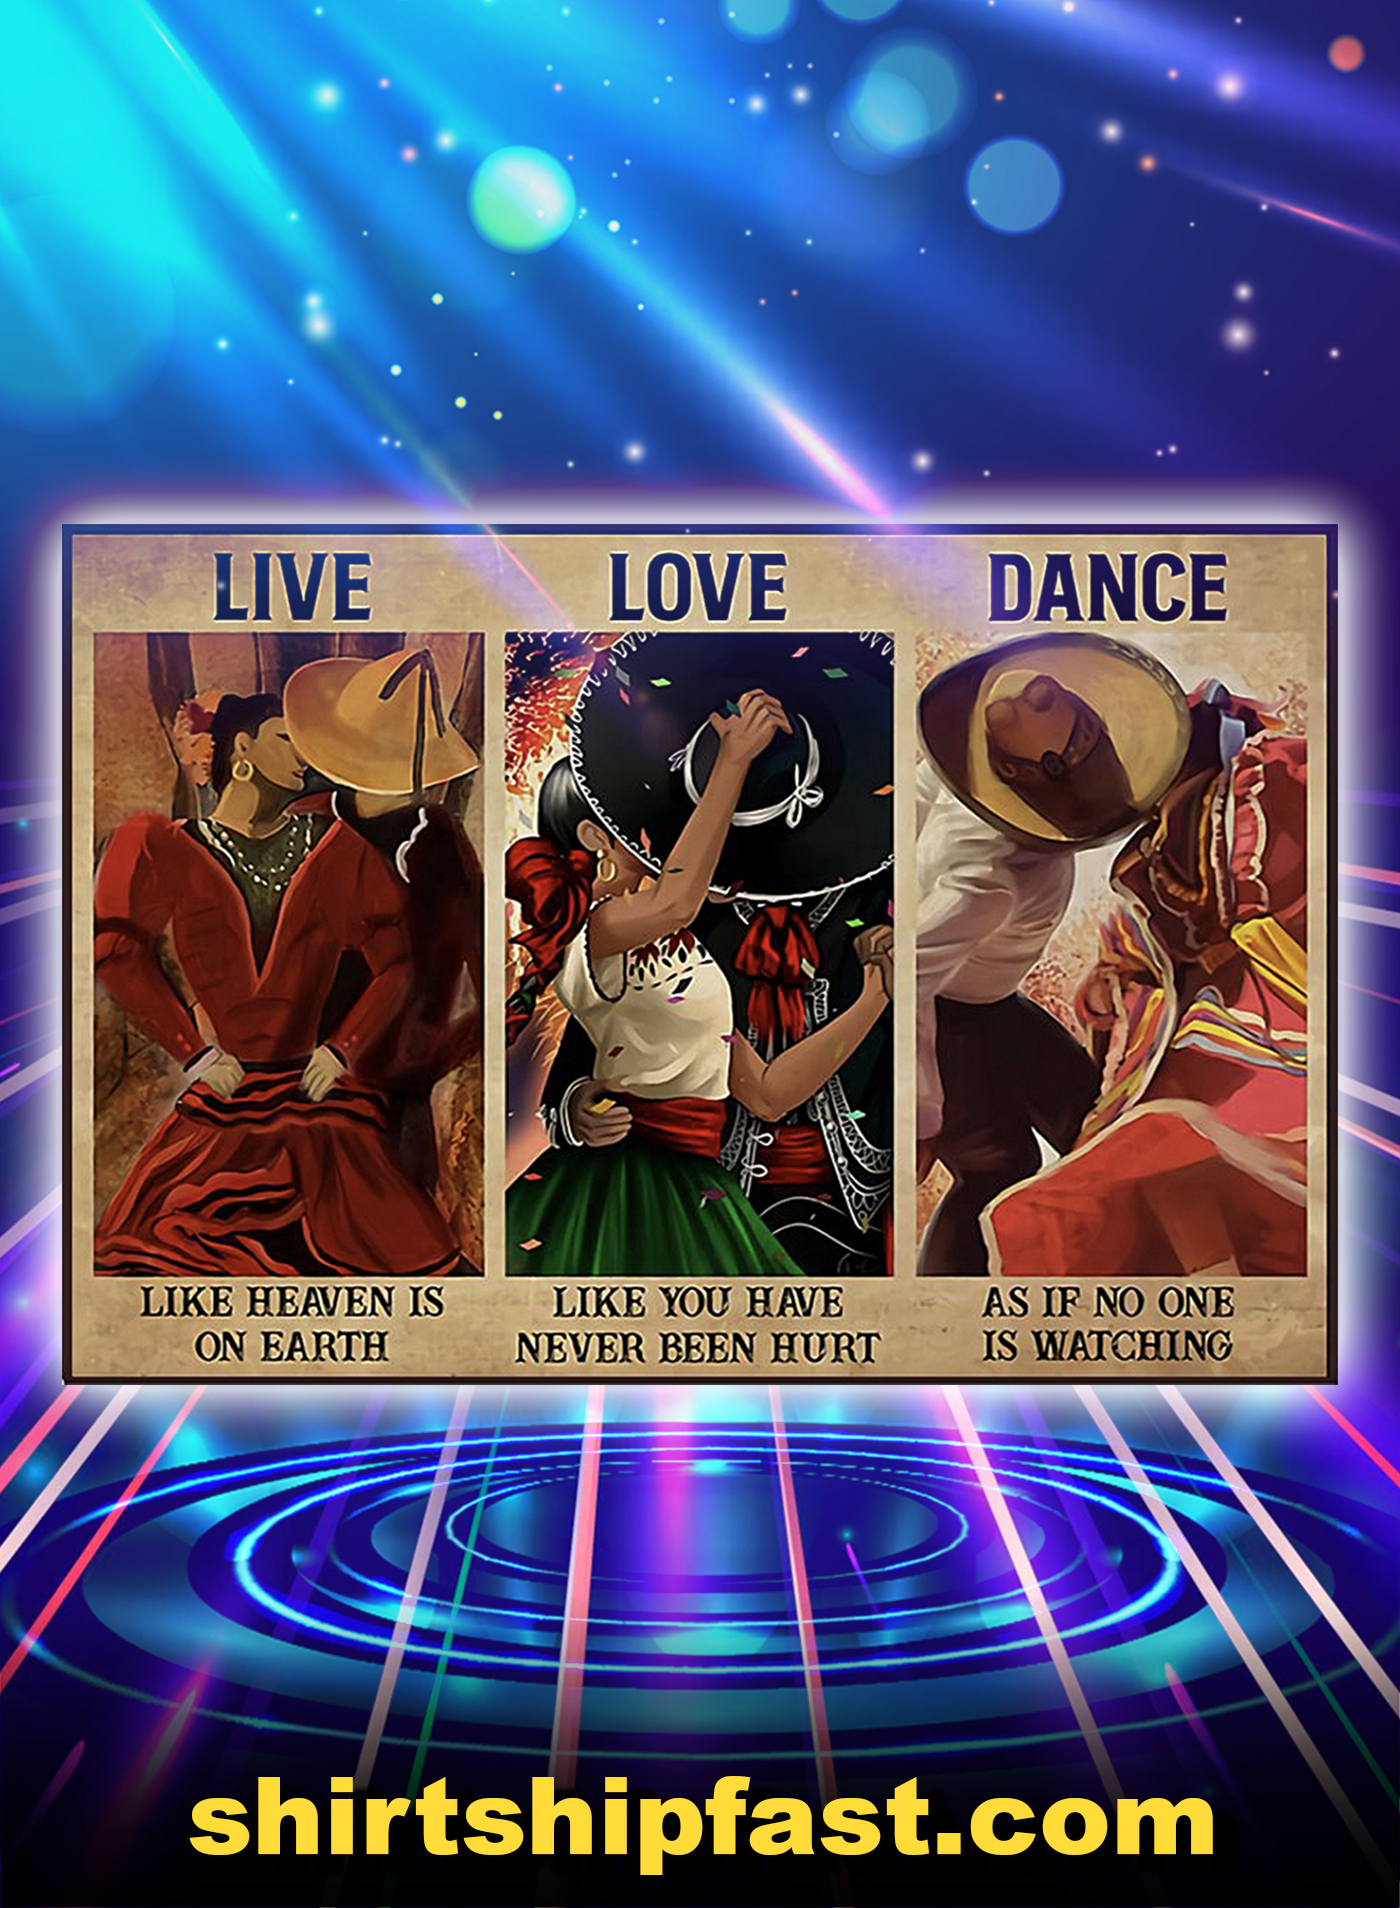 Mexican culture live love dance poster - A1